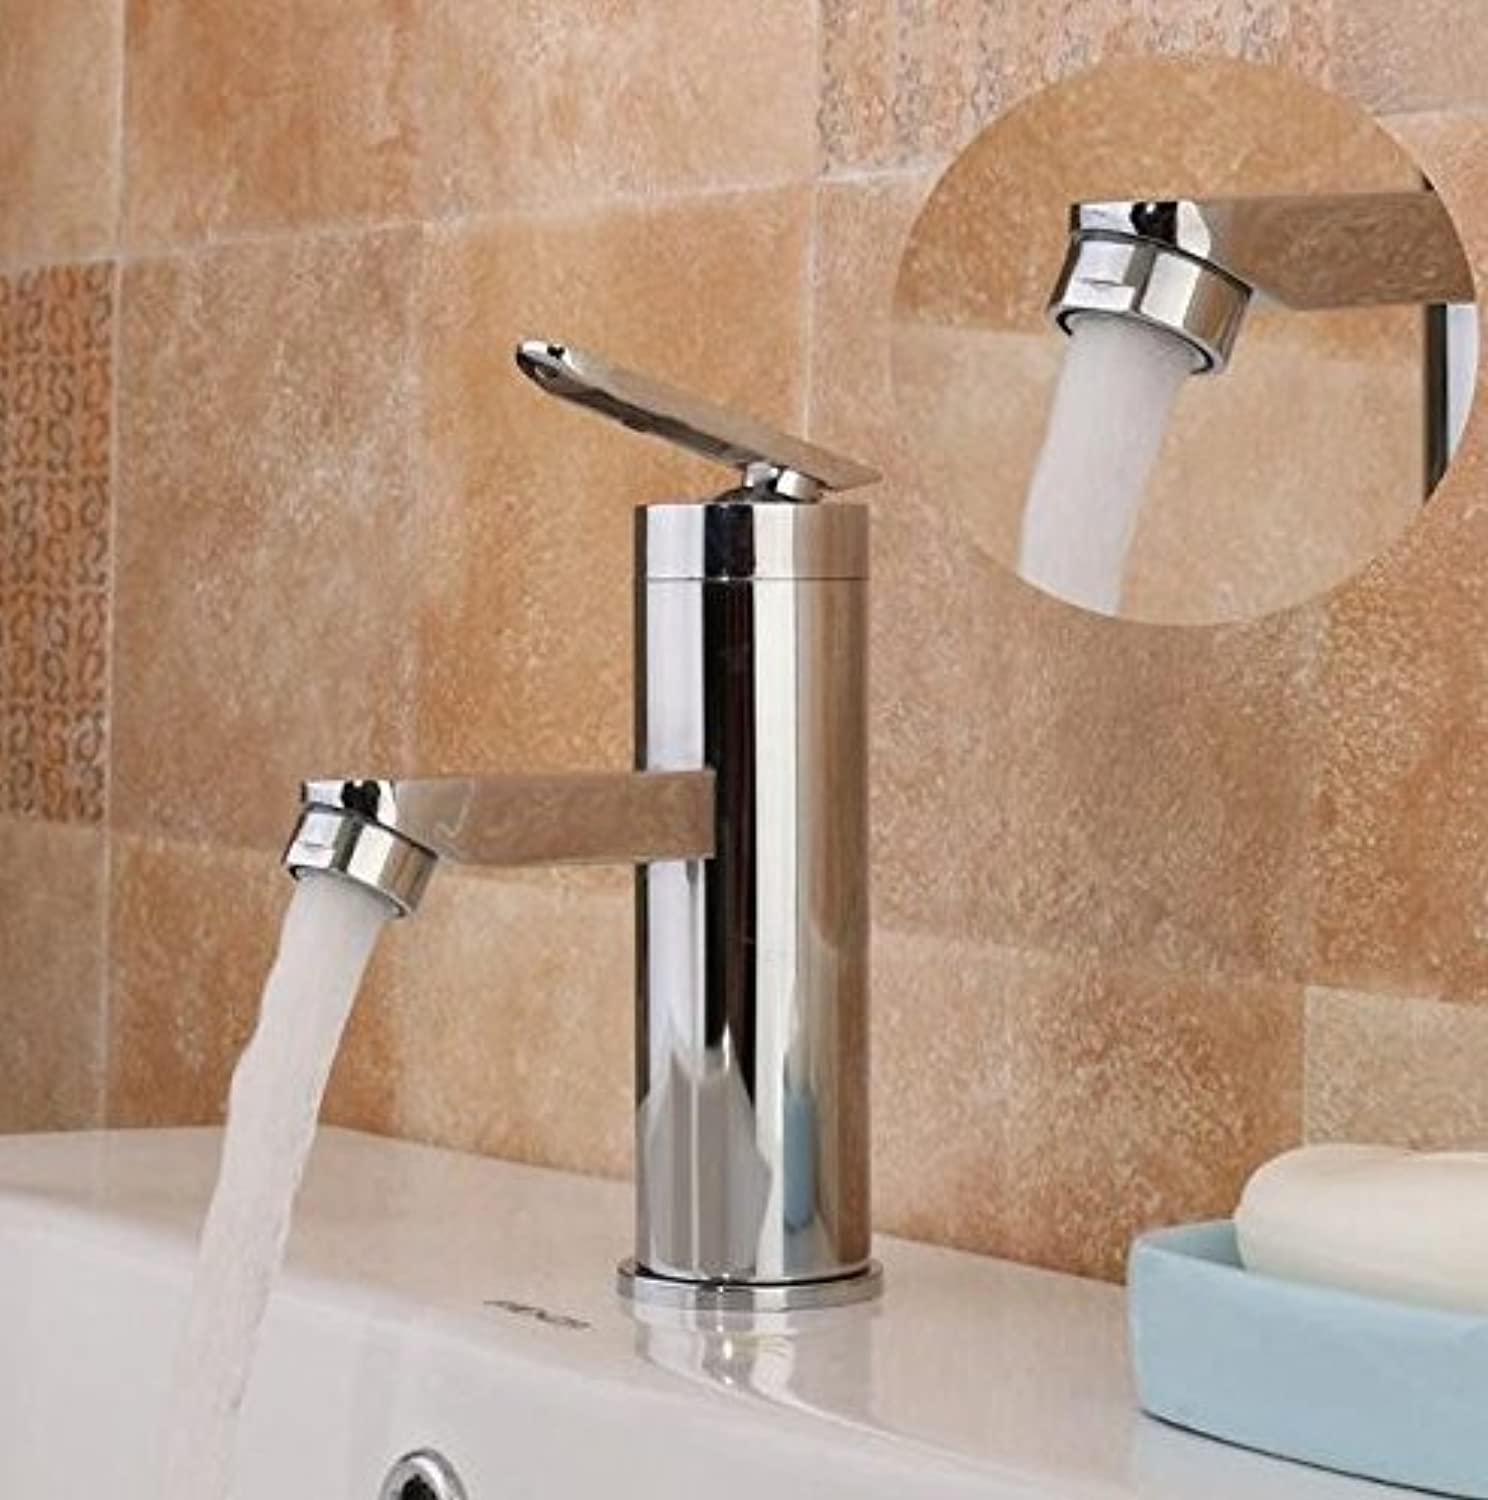 Single Handle Bathroom Hot Cold Water Mixer Faucet Basin Faucet Bathroom Kitchen Platform Attached Brushed Chrome Basin Faucet